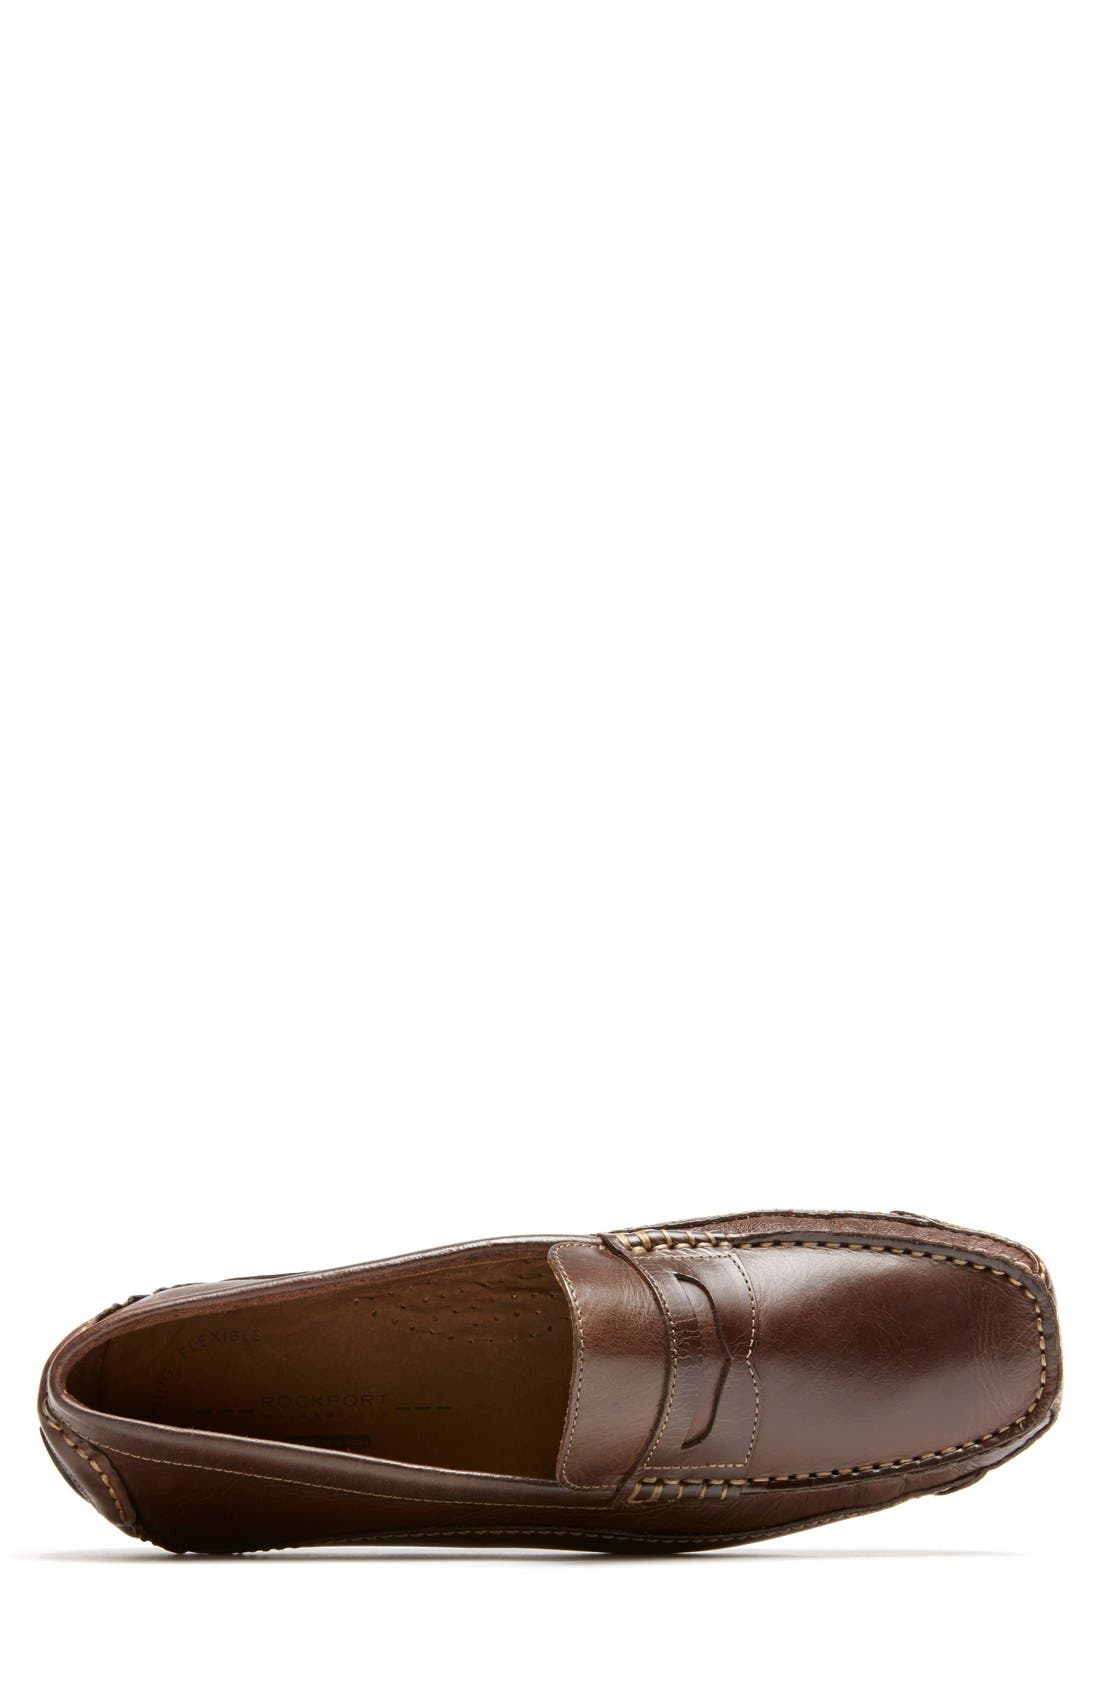 Luxury Cruise Penny Loafer,                             Alternate thumbnail 5, color,                             200